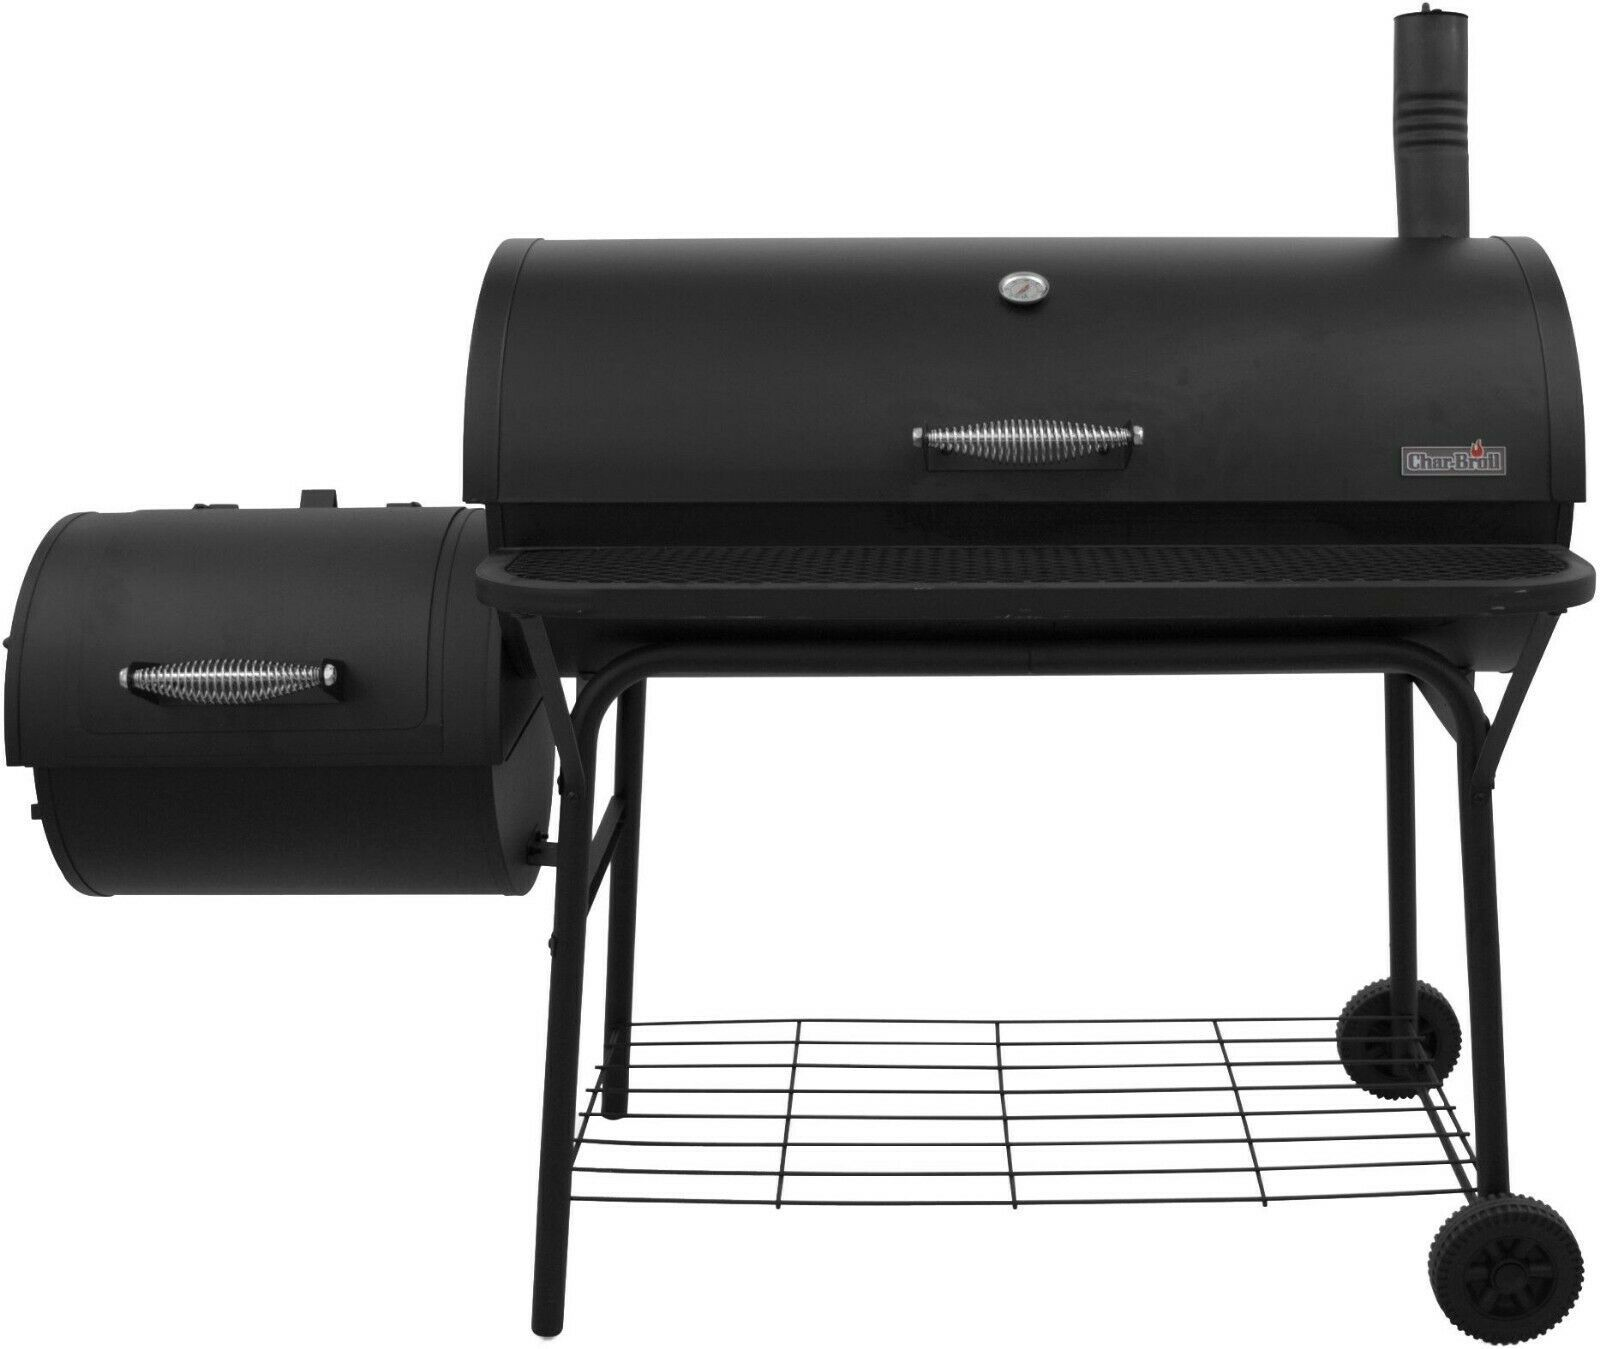 Large Charcoal Grill Outdoor Portable Barbecue Offset Smoker Bbq Camp Grilling Smokers Ideas Of Smokers S Grill Smoker Offset Smoker Large Charcoal Grill